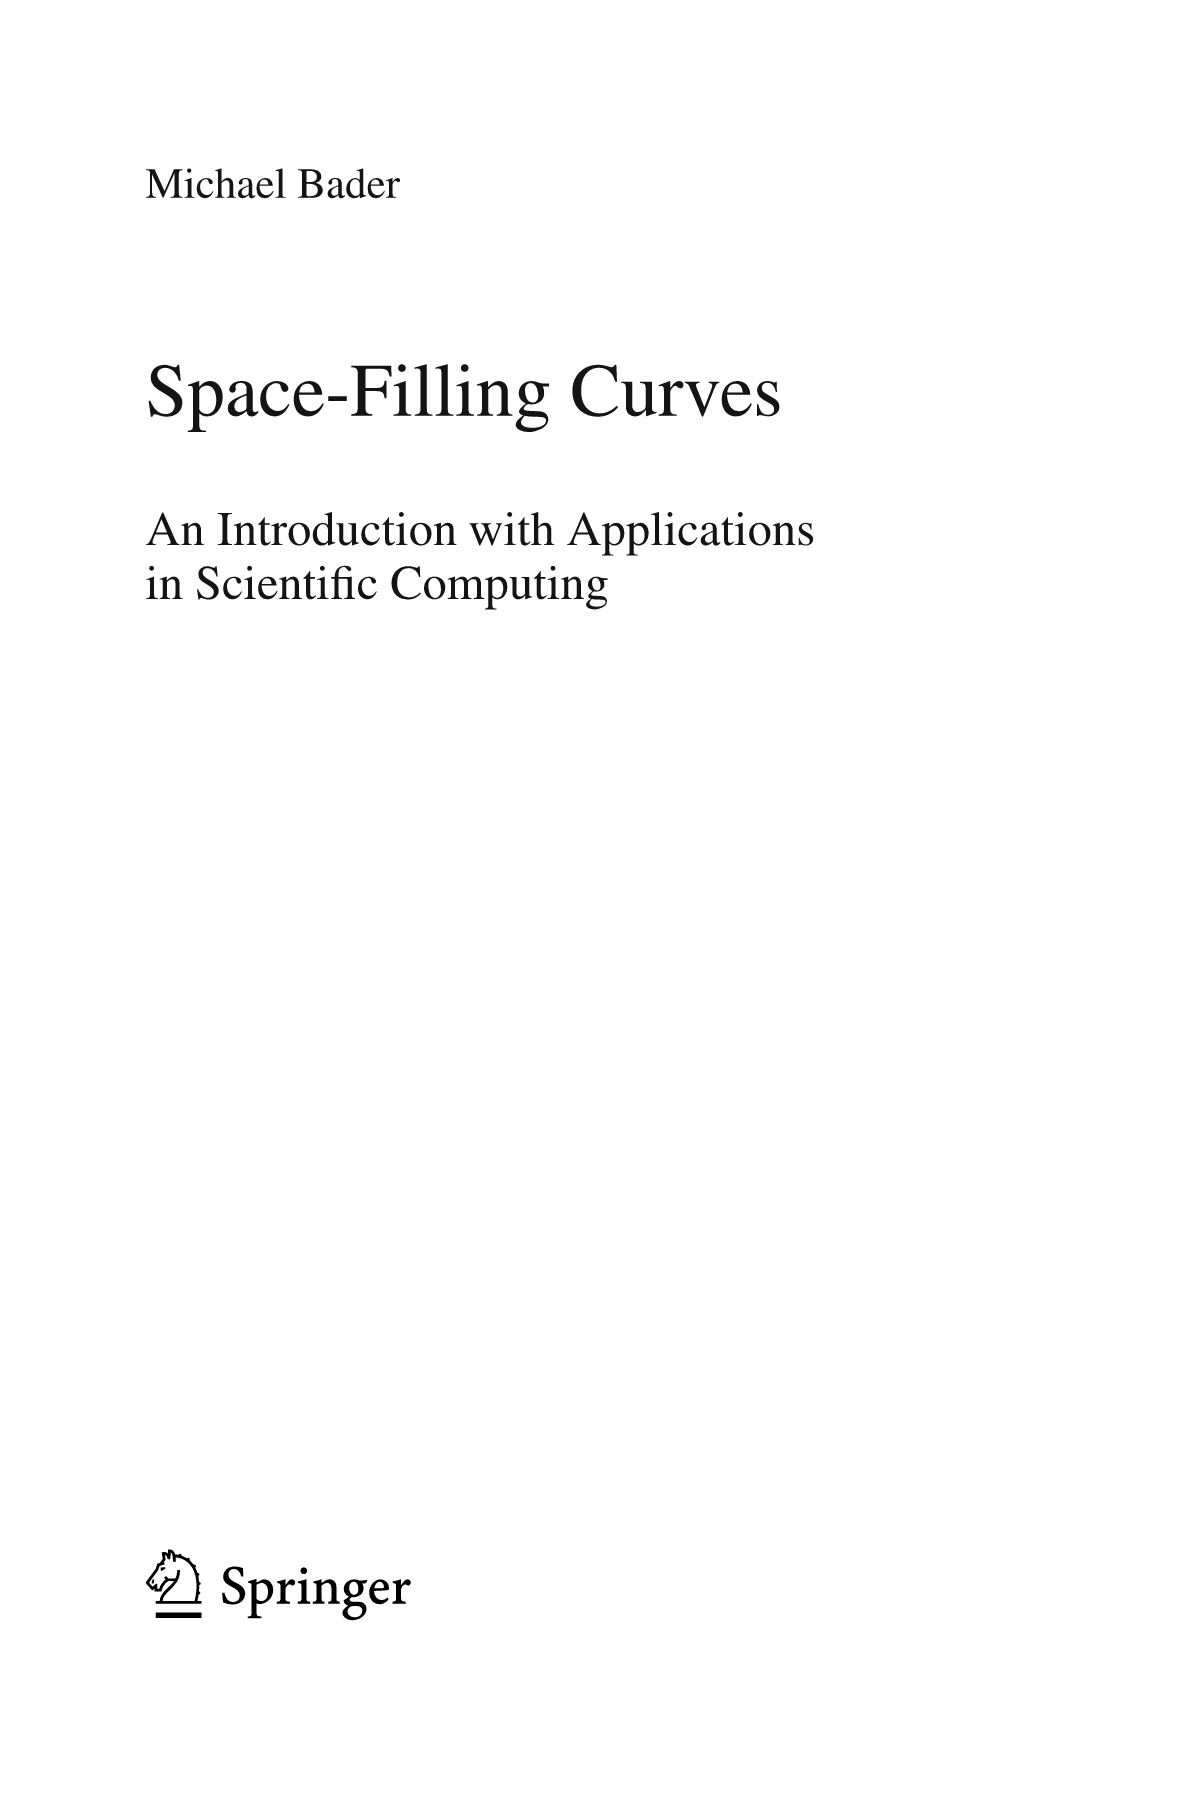 Space-Filling Curves Springer Pages 1 - 50 - Text Version | AnyFlip